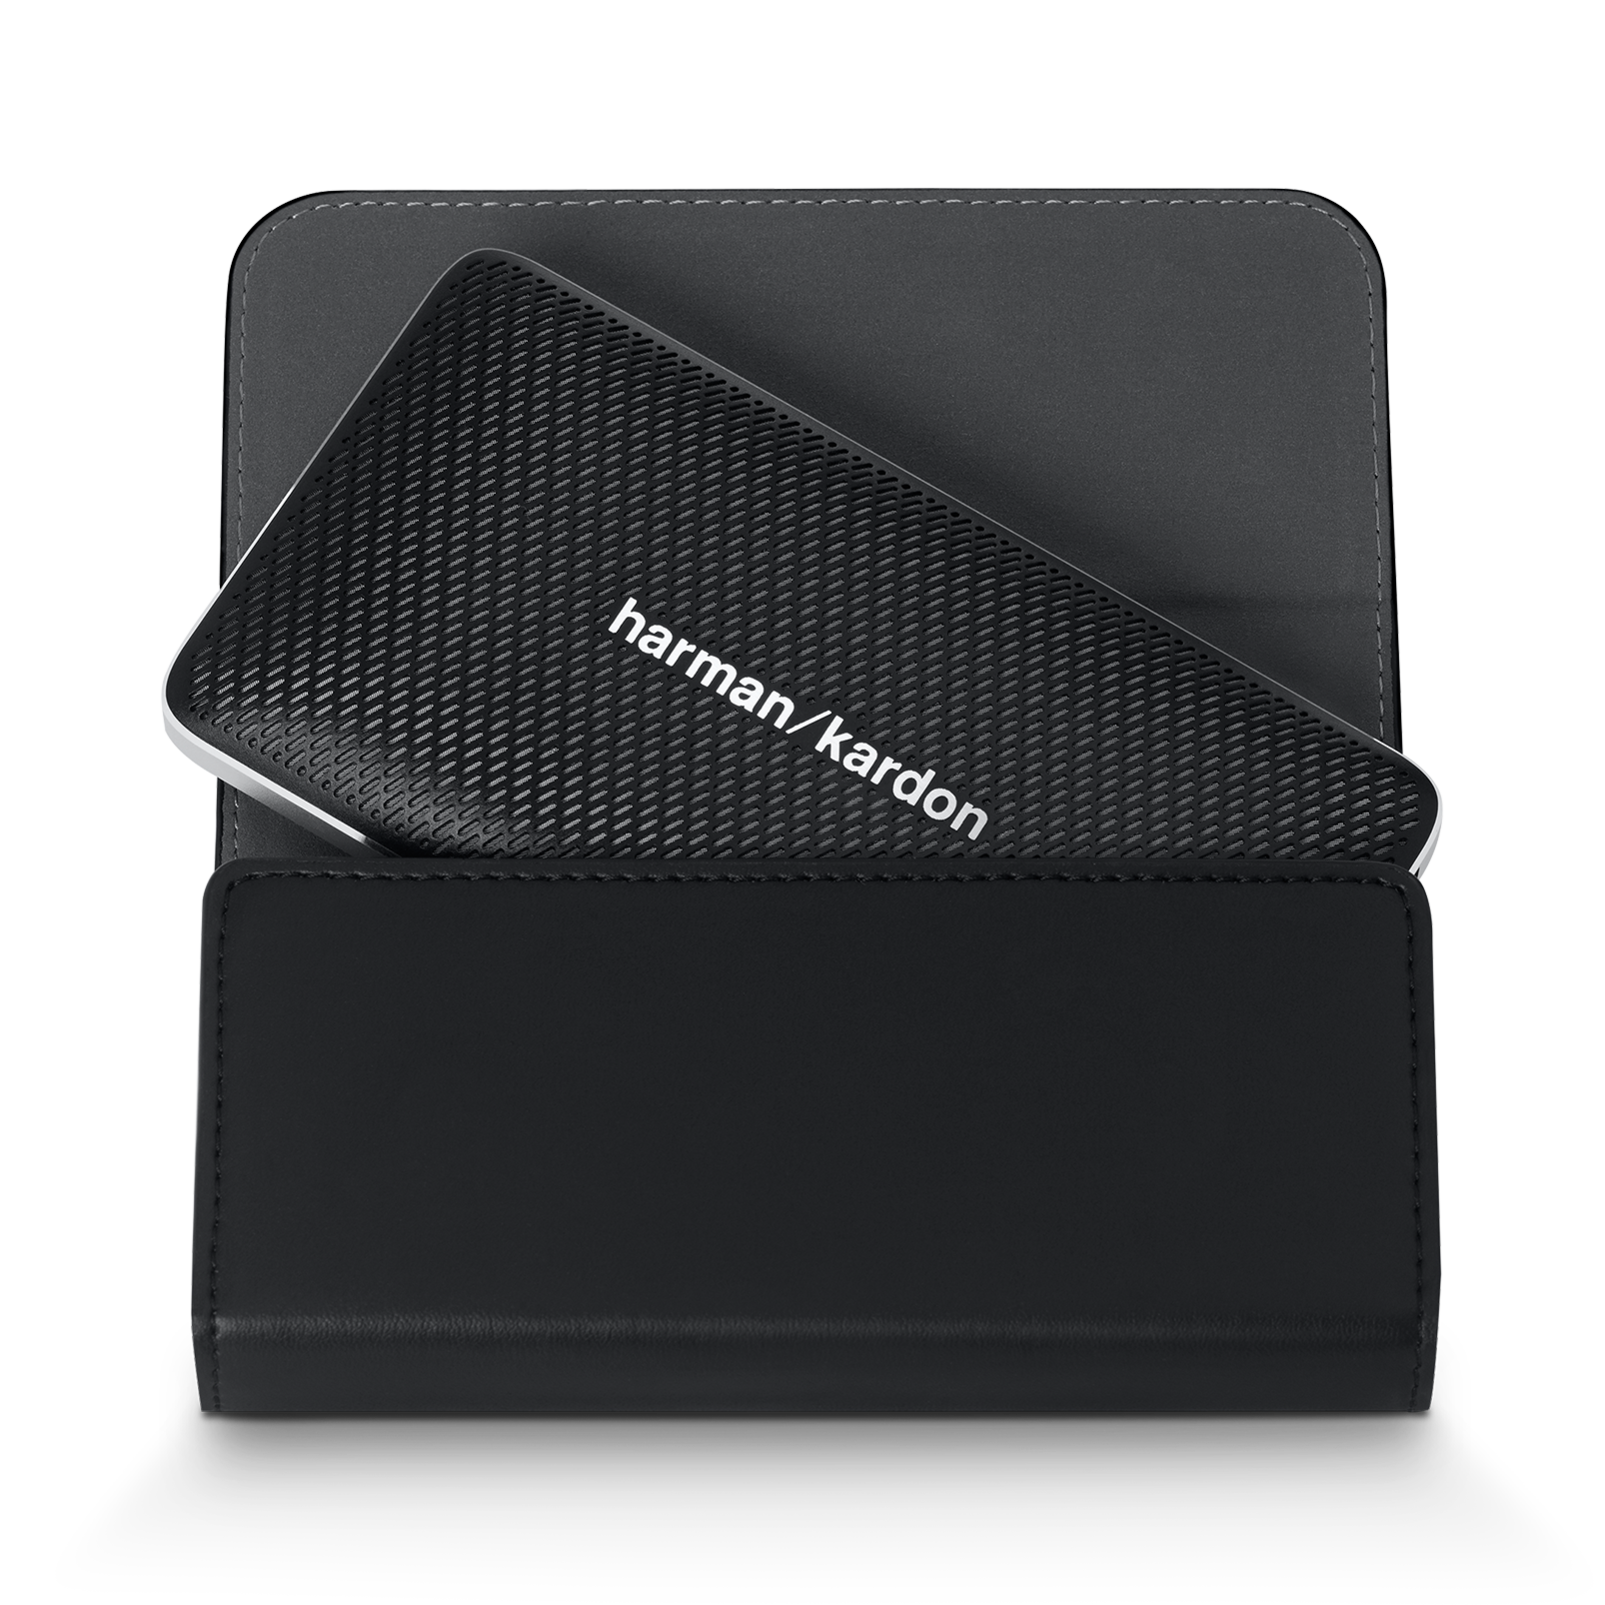 Esquire Mini Case - Black - Carrying case for Harman Kardon Esquire Mini - Detailshot 1